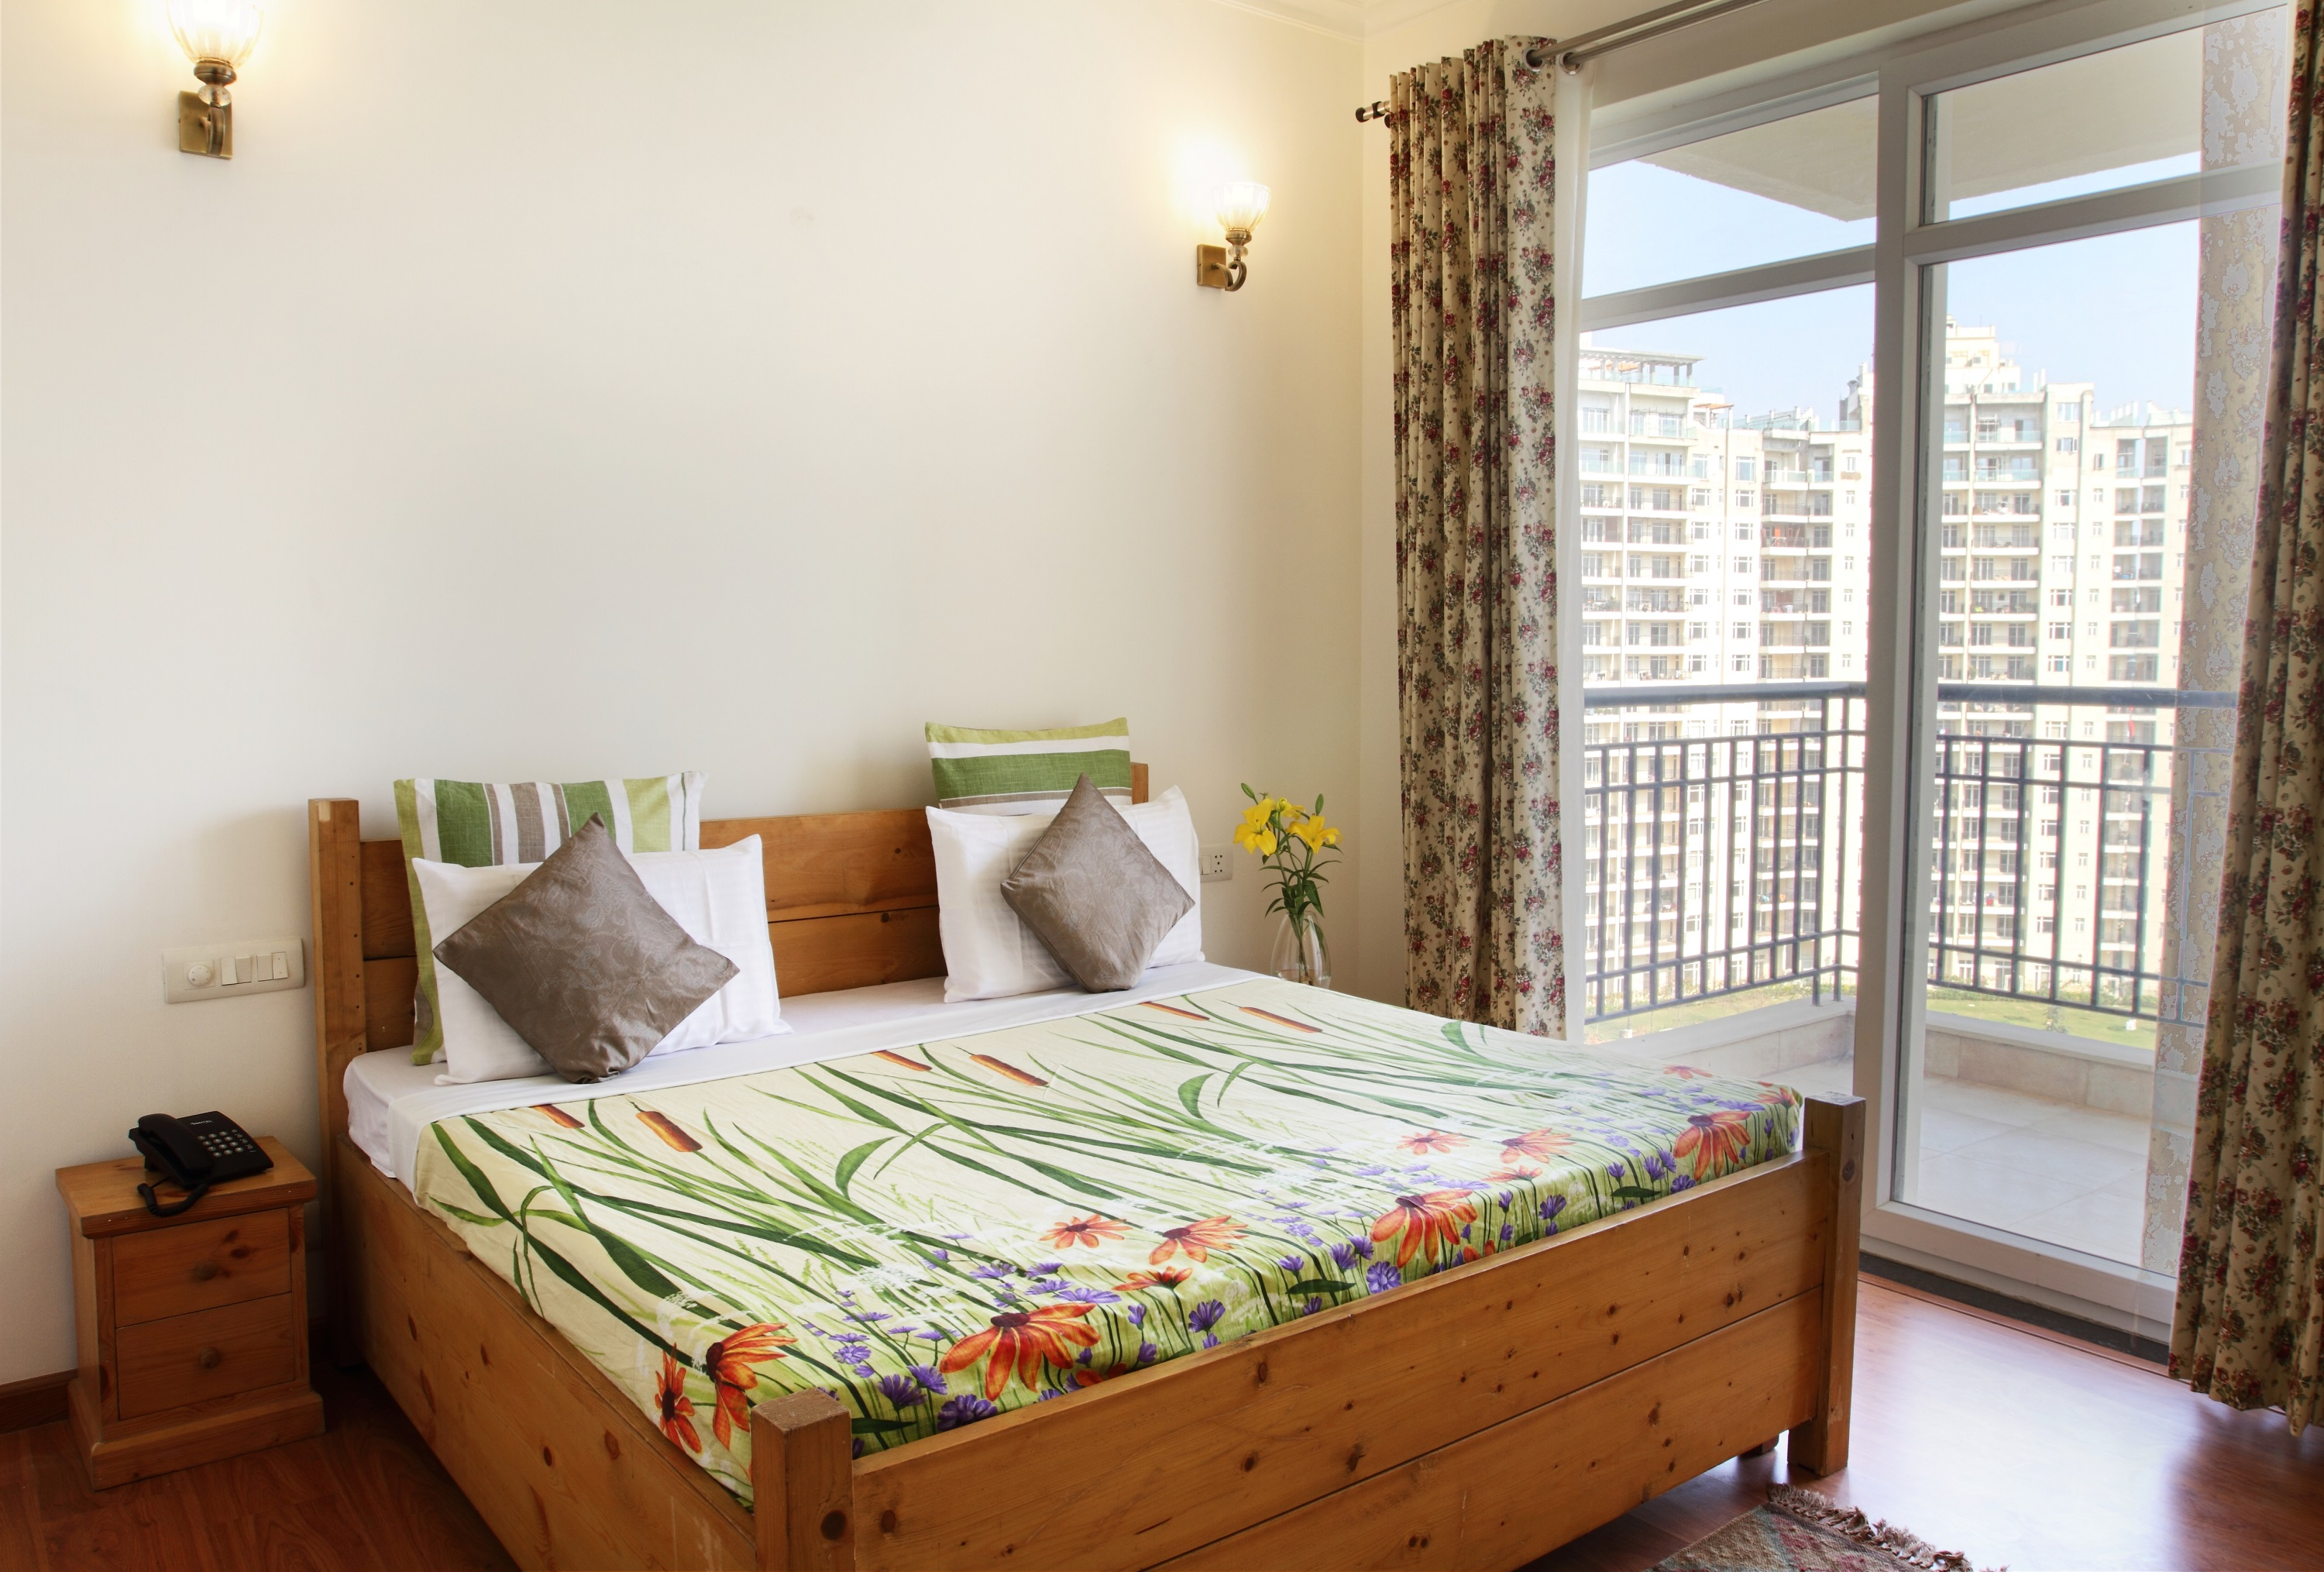 Perch Central Park Sona Road, 2BHK